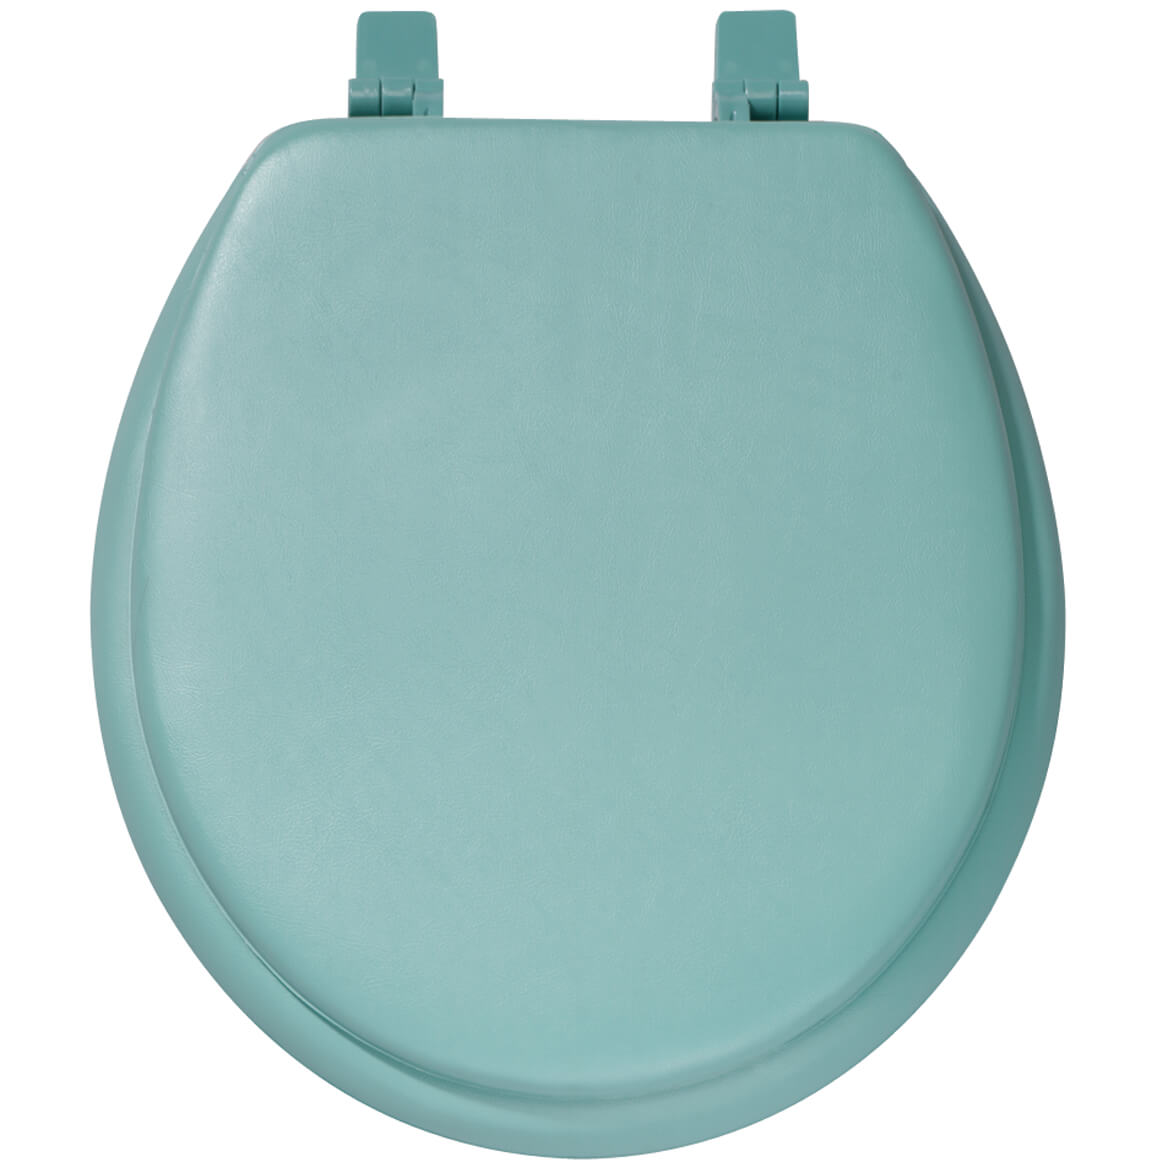 Padded Toilet Seat And Lid Green Ebay